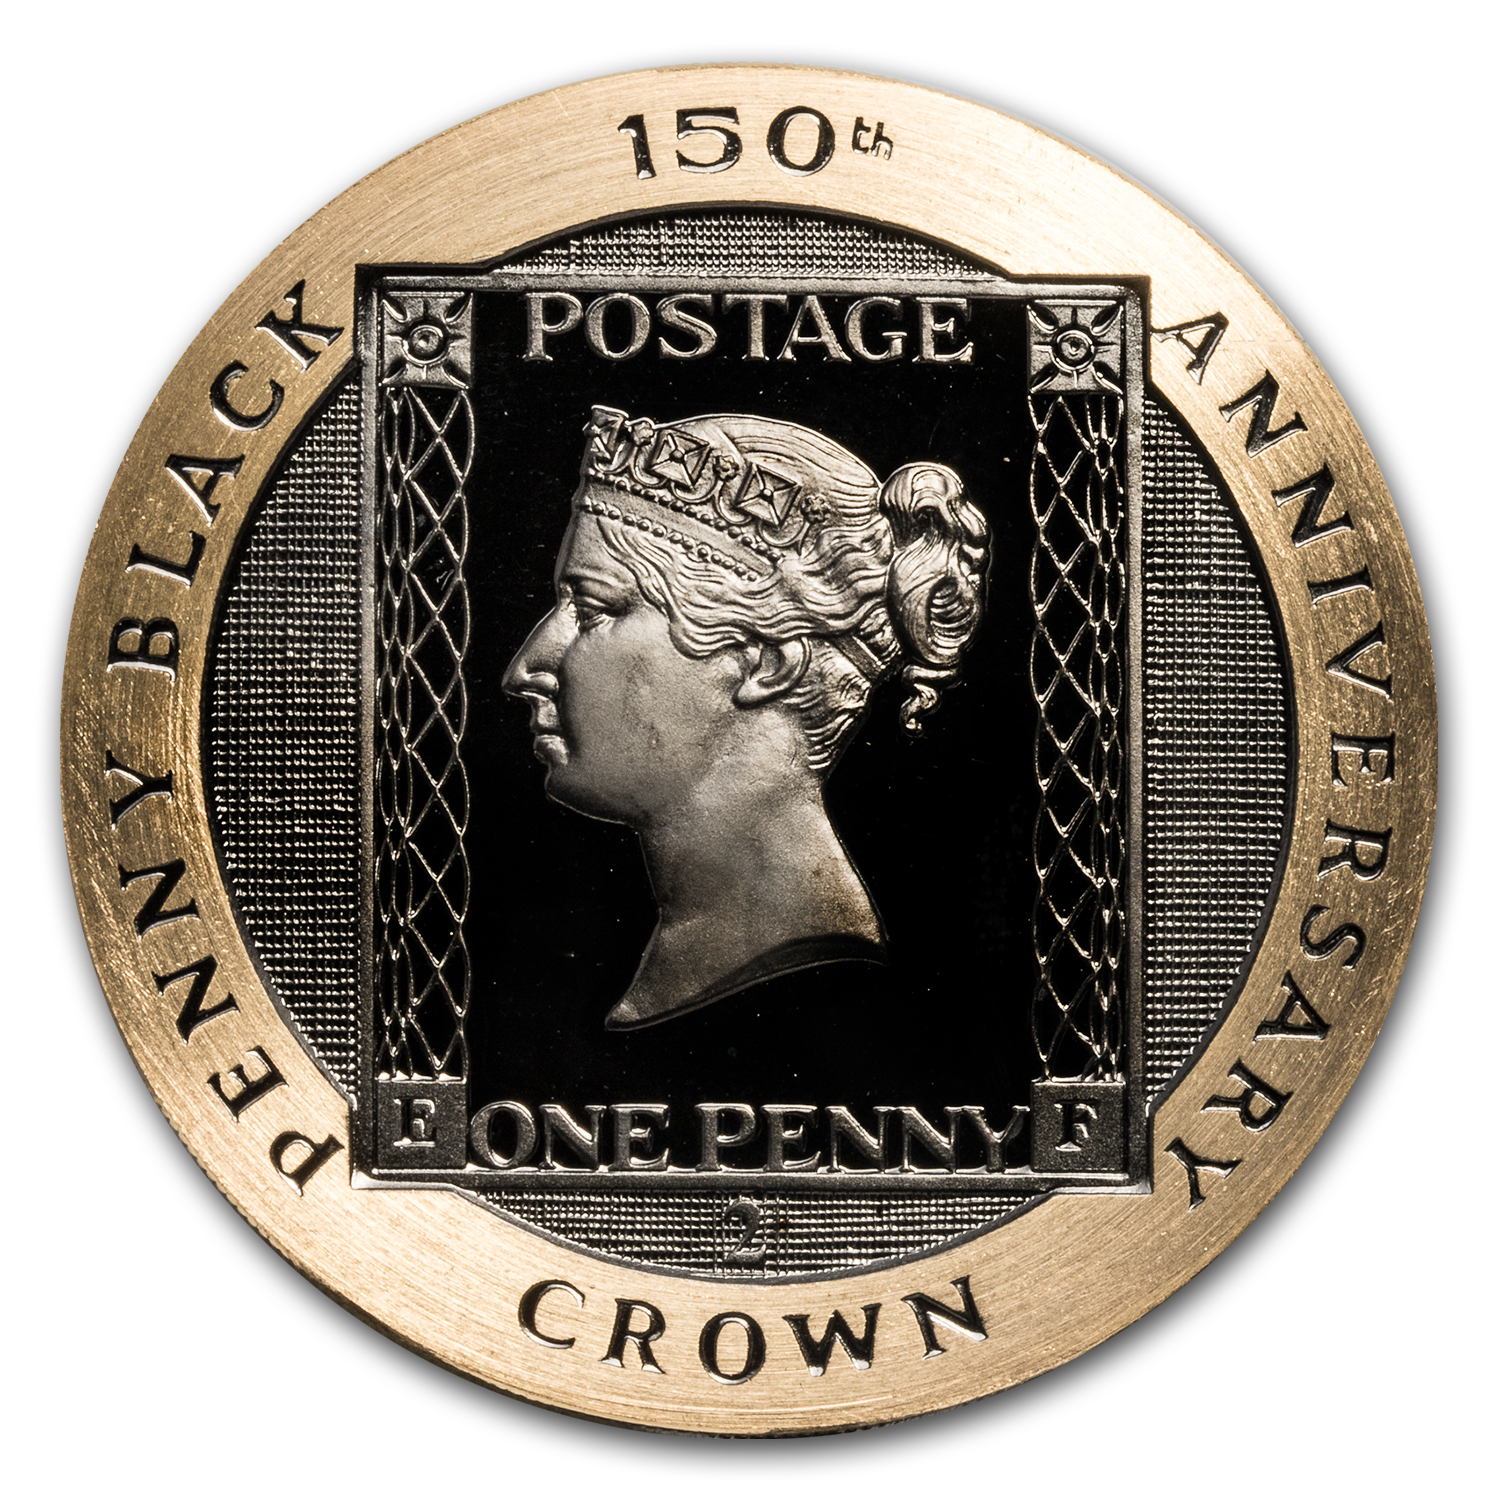 Isle of Man 1990 2 Crown Proof Gold 2 oz - Penny Black